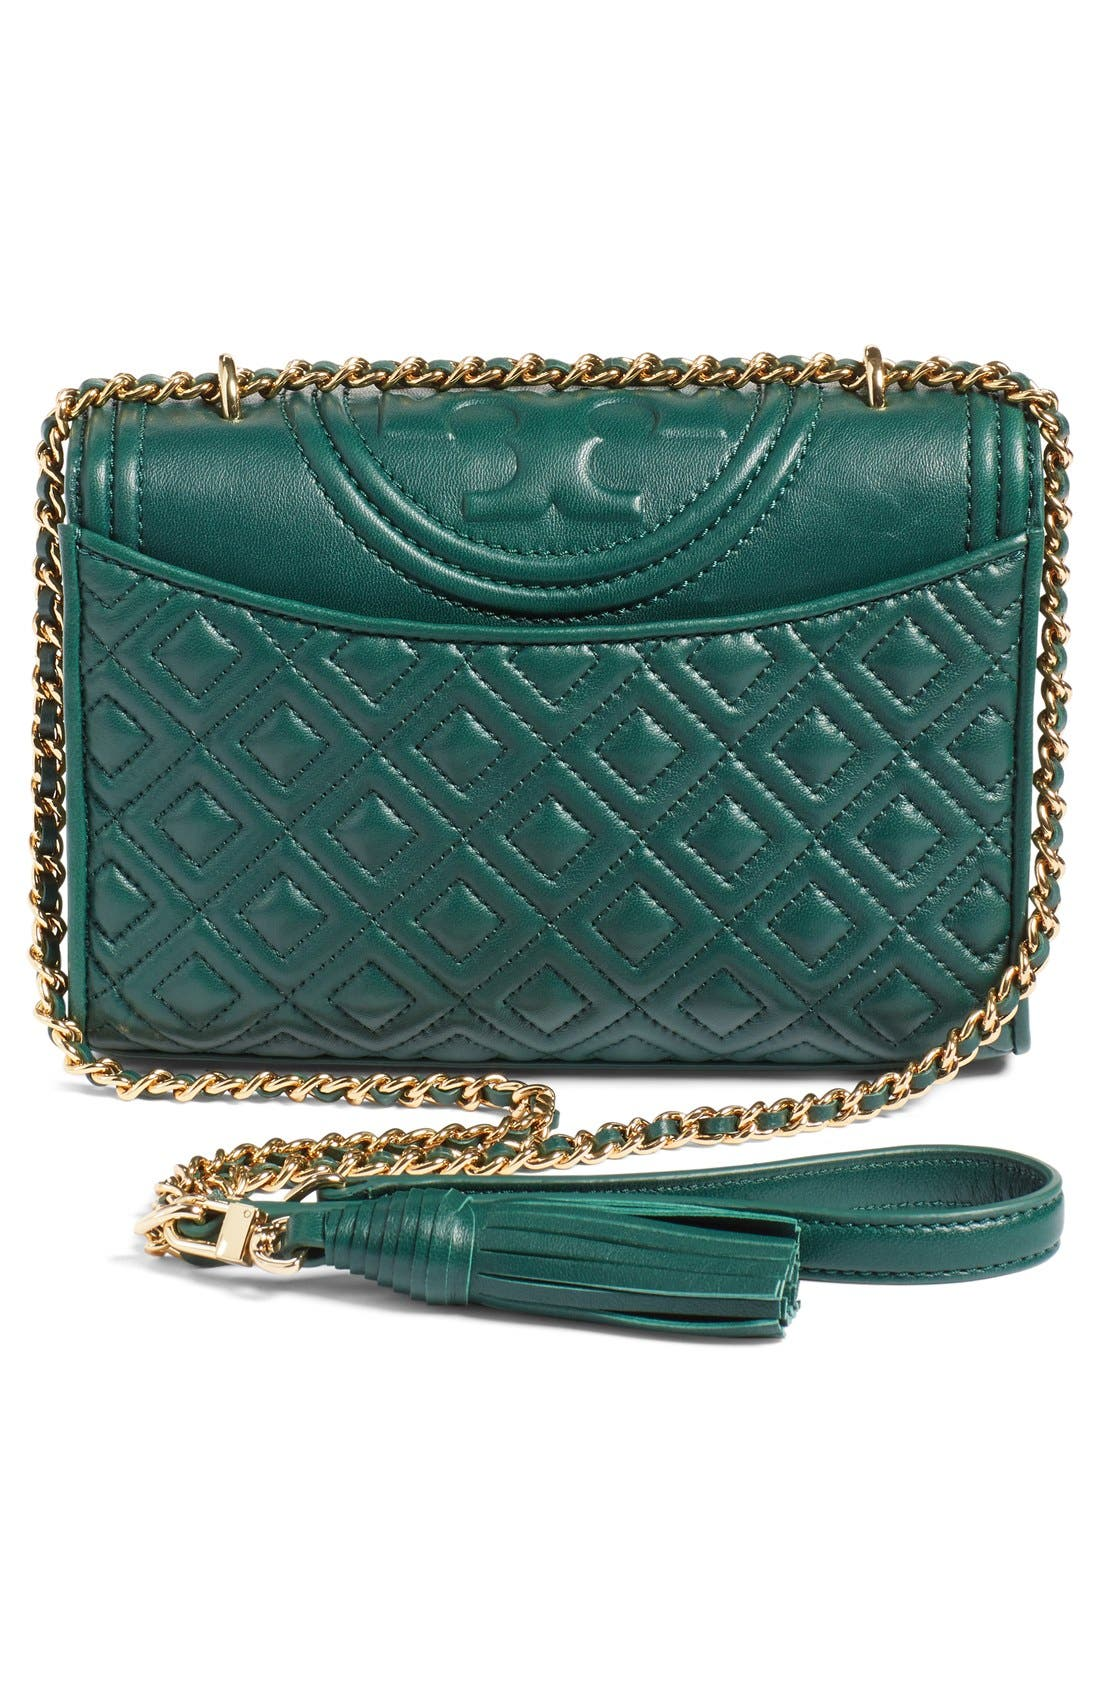 Alternate Image 3  - Tory Burch 'Small Fleming' Quilted Leather Shoulder Bag